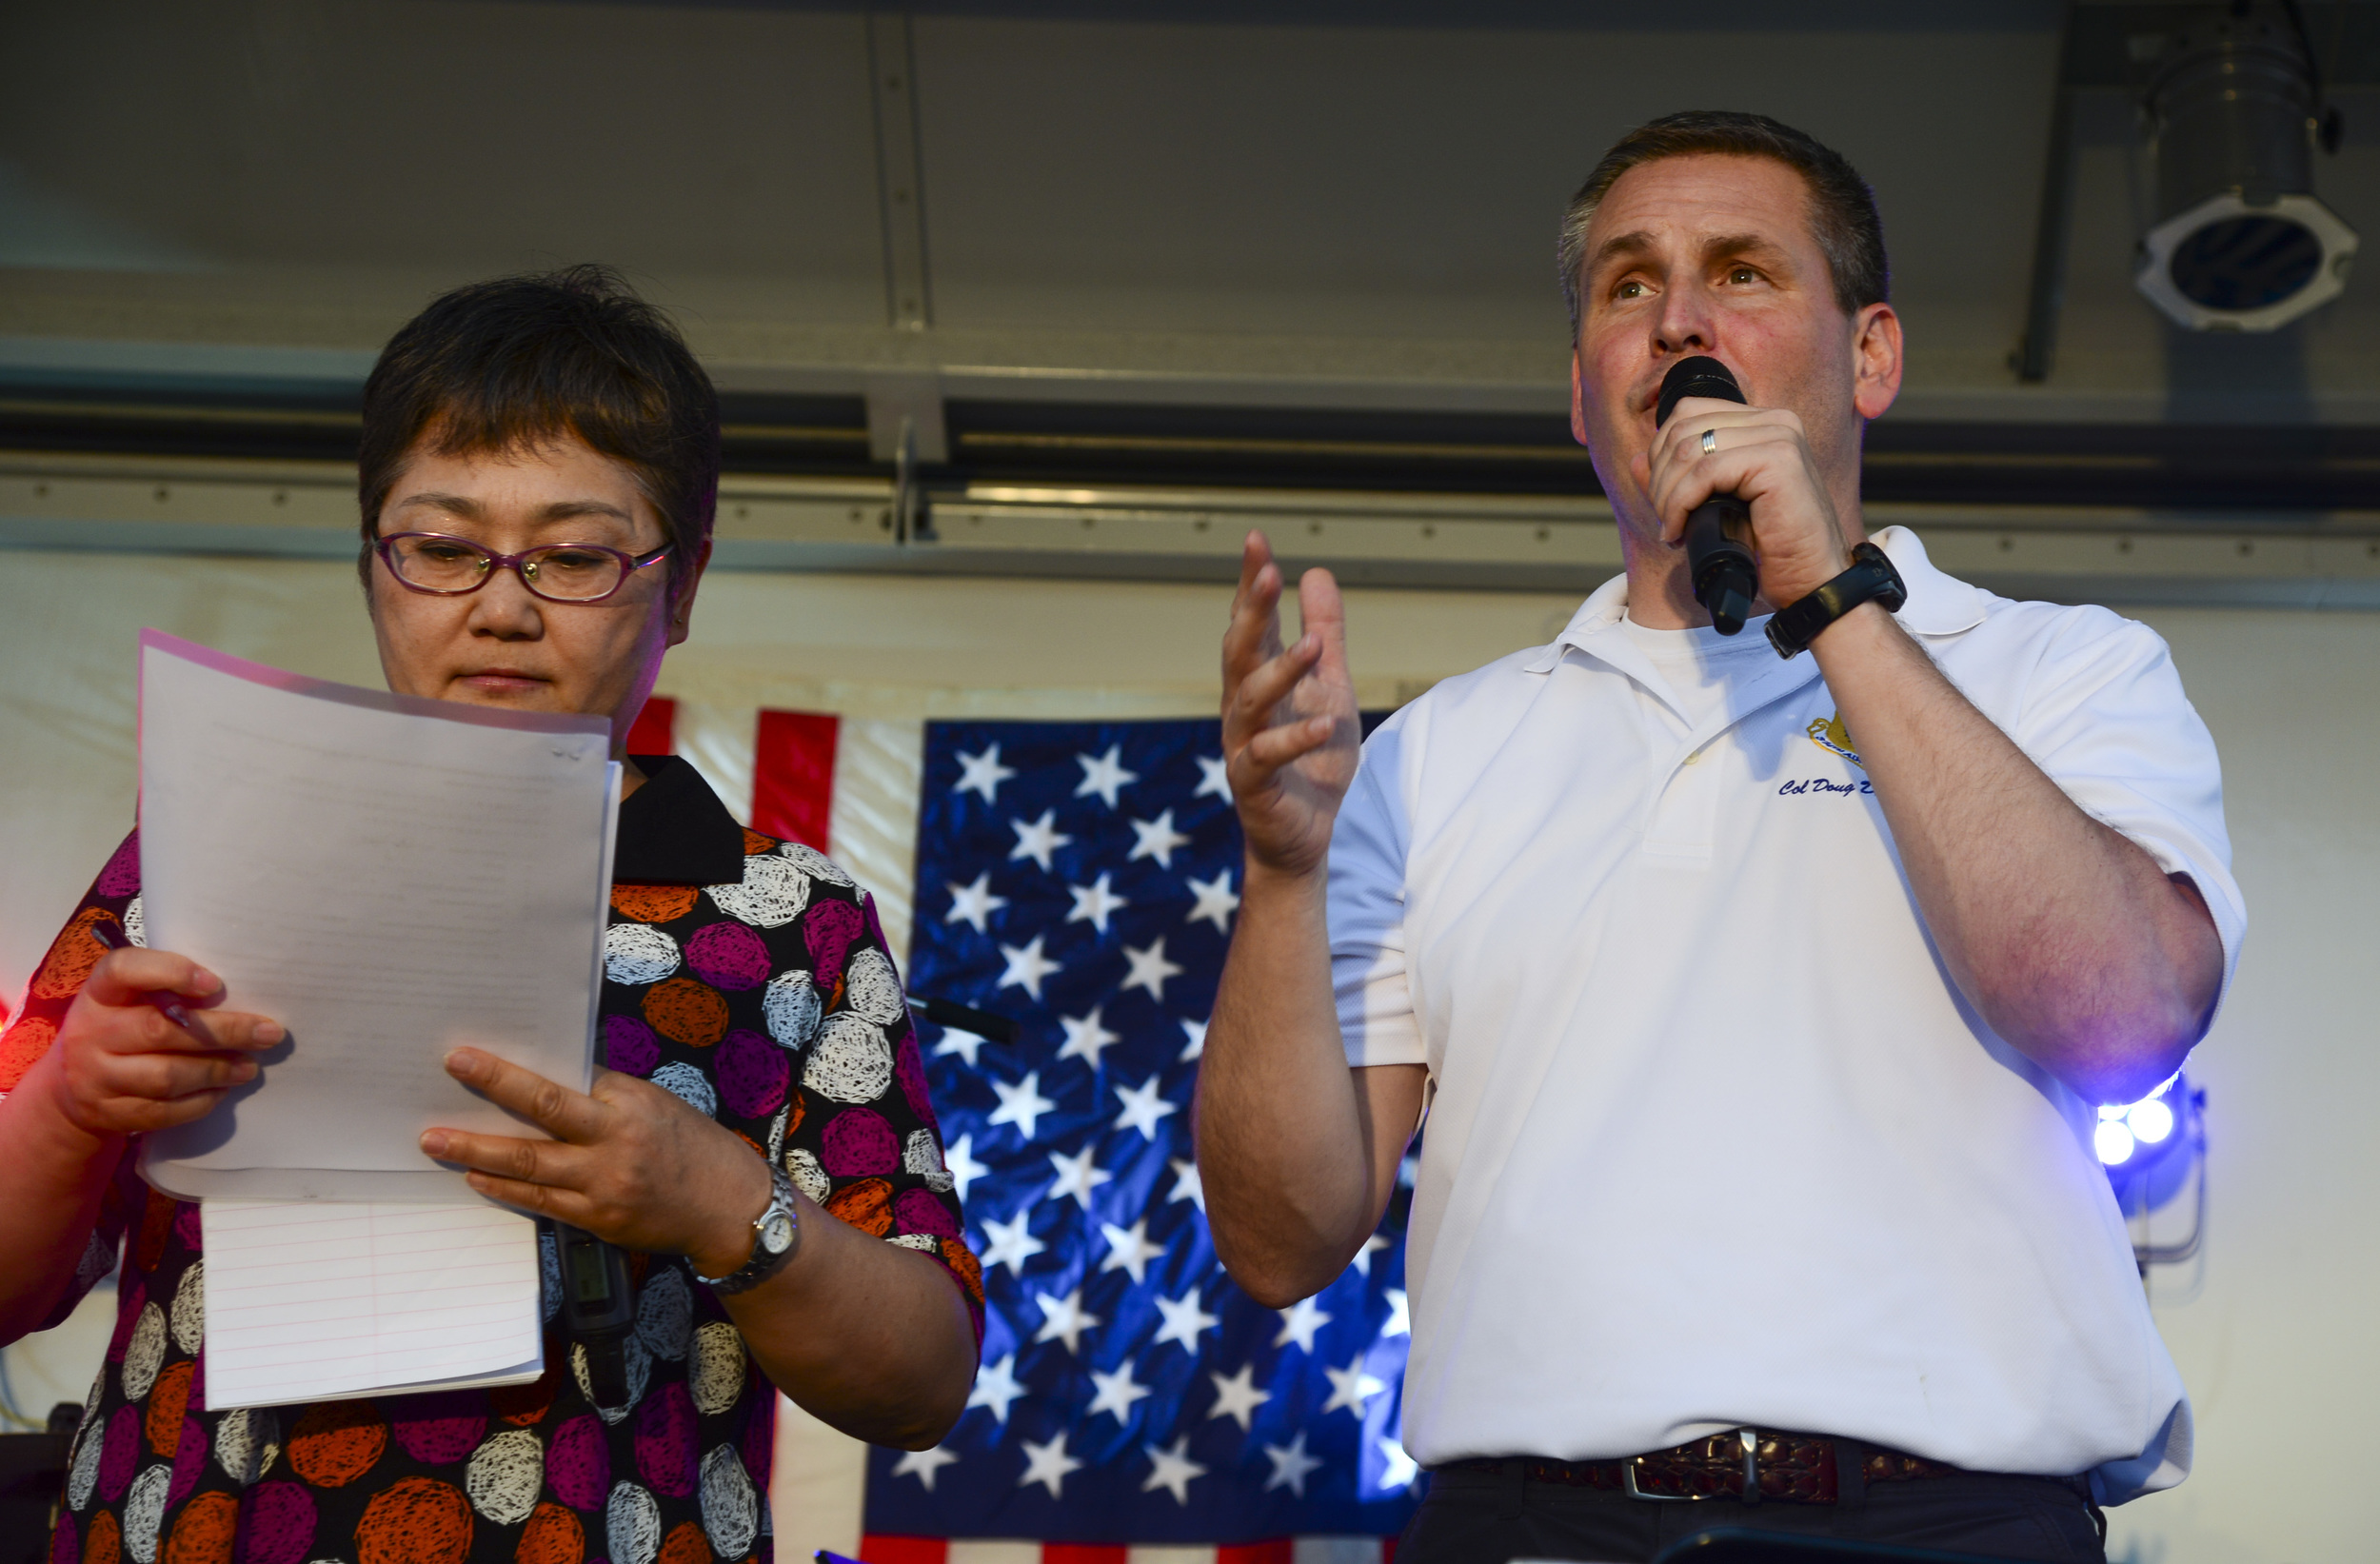 Col. Douglas DeLaMater, 374th Airlift Wing commander, gives a speech during the Celebrate America event at Yokota Air Base, Japan, July 2, 2015. Festivities of the day included a 5K run, live music performances, petting zoos, go-kart racing and fireworks in celebration of Independence Day. (U.S. Air Force photo by Senior Airman David Owsianka/Released)